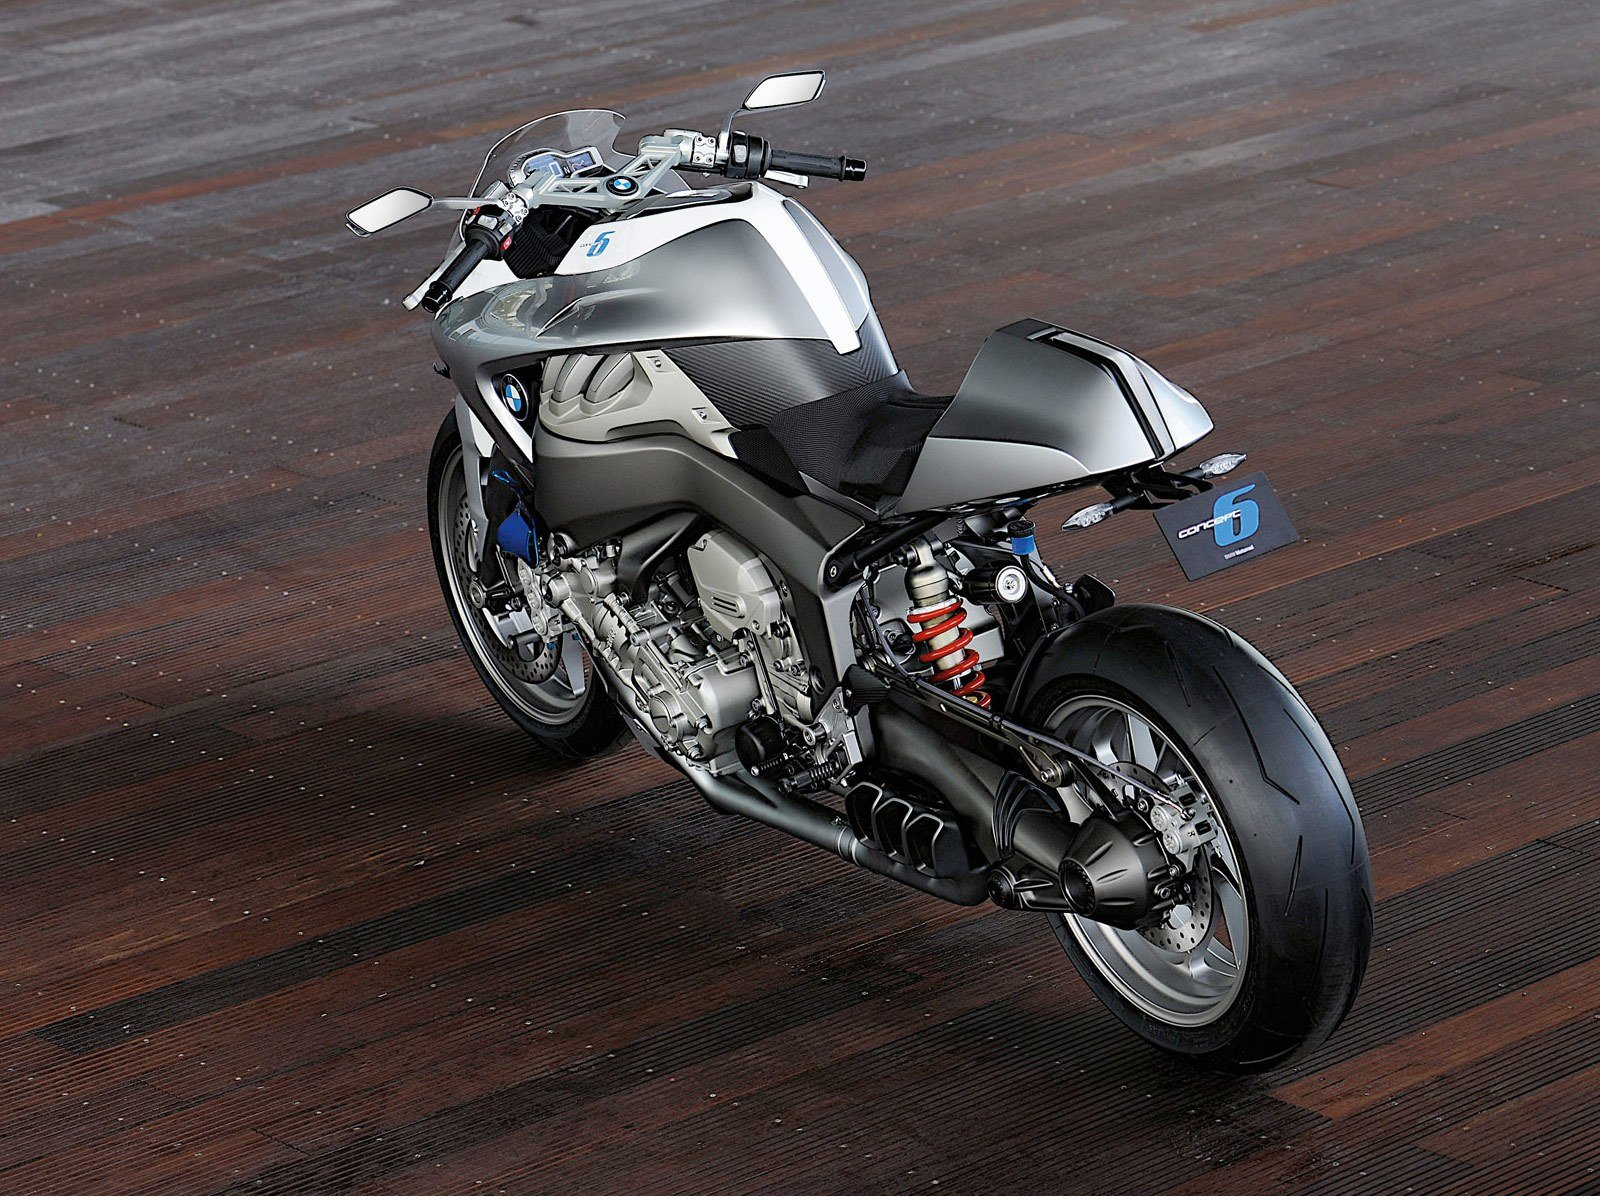 Latest Bmw Motorrad Concept 6 2010 Motorcycle Big Bike Free Download